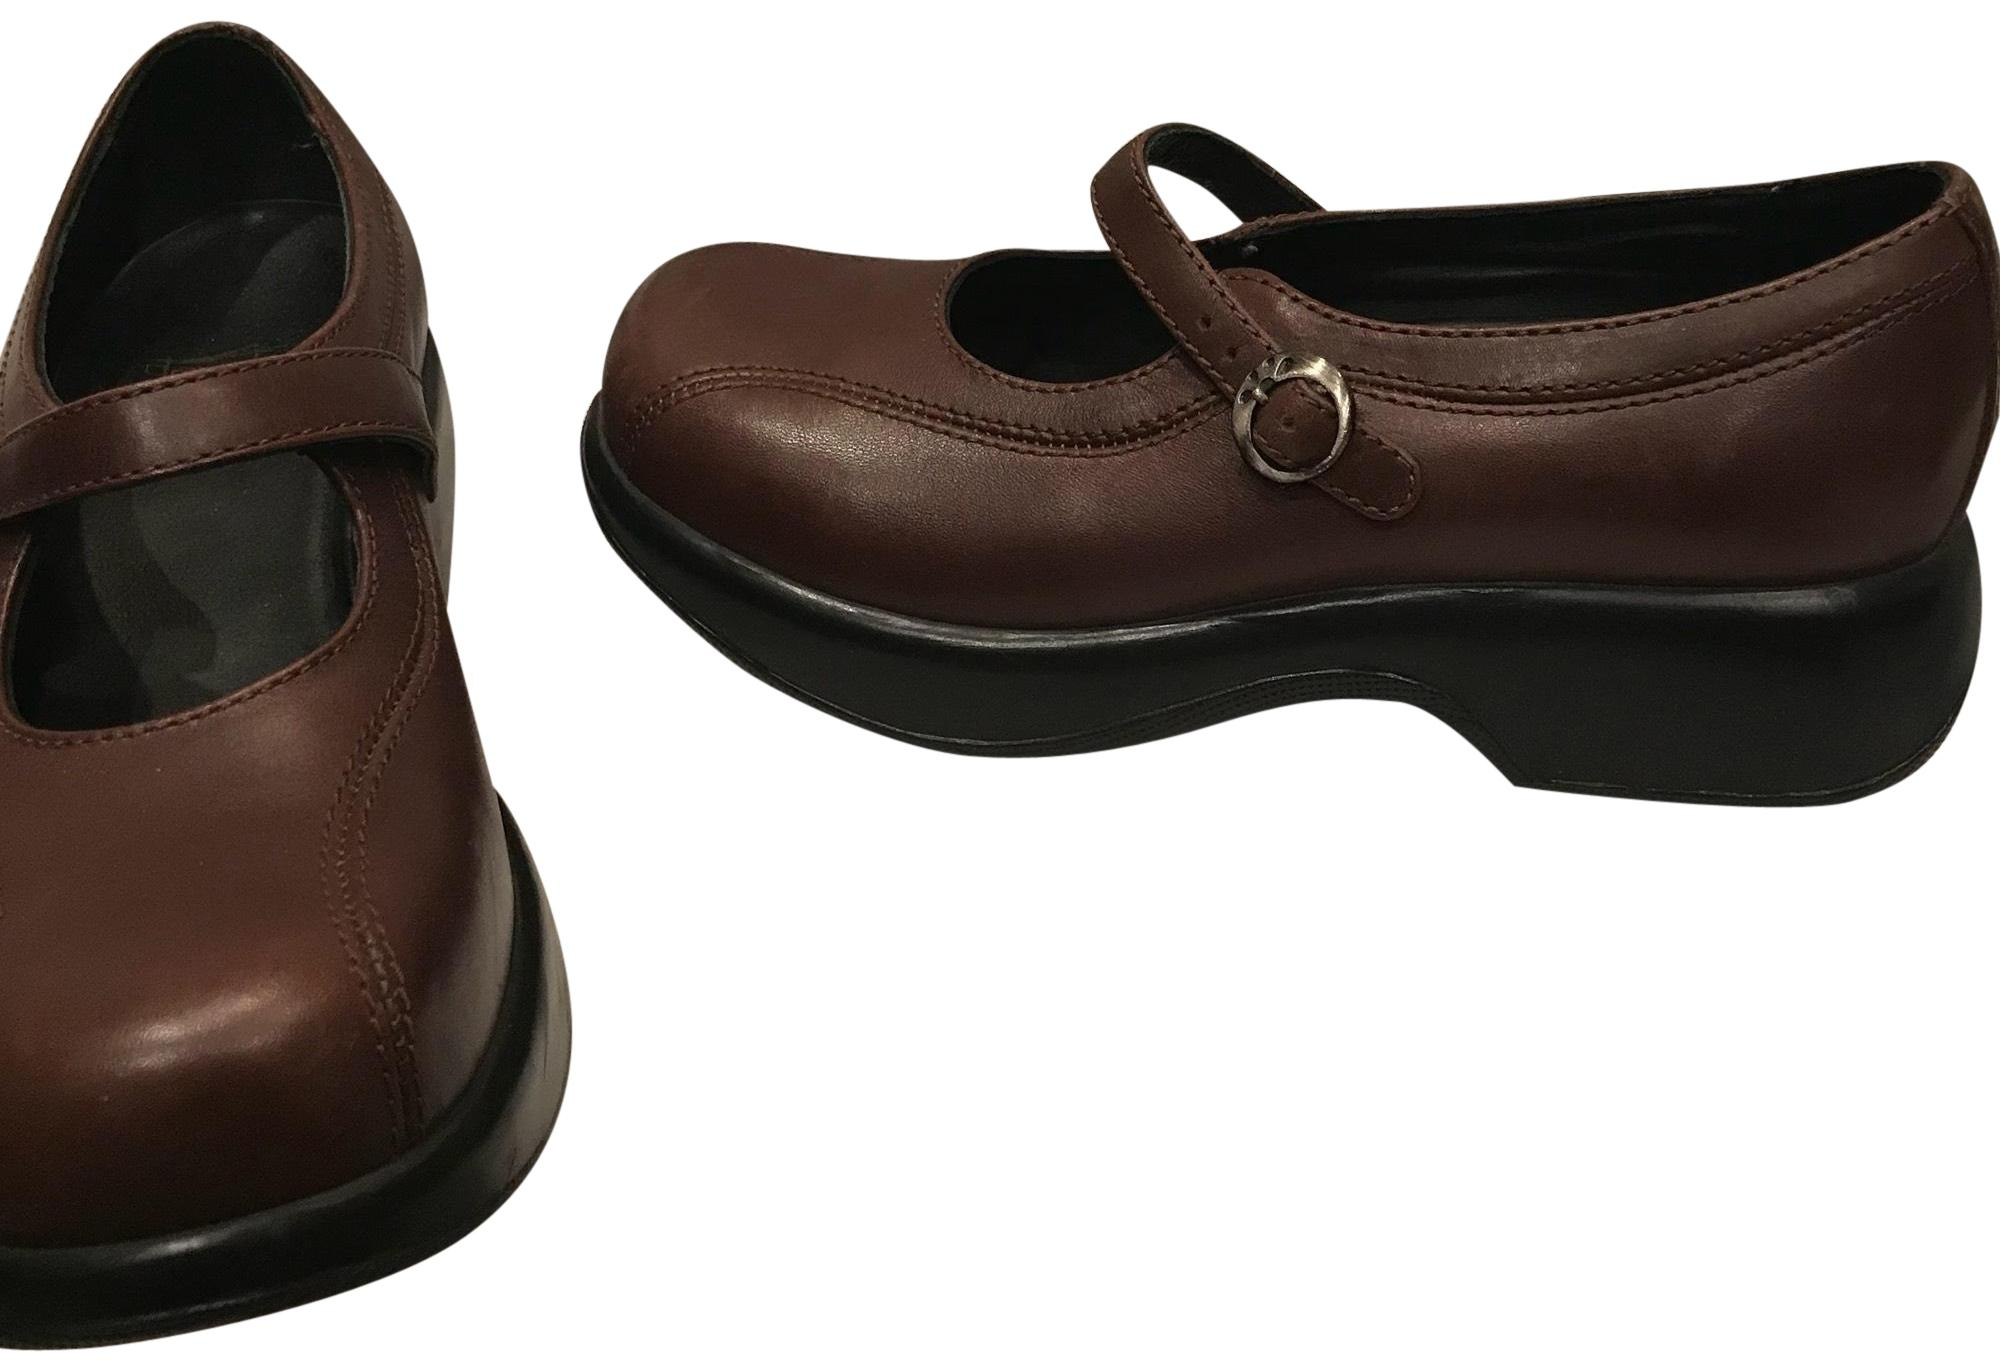 2dac4be91402 Dansko Brown Mary Janes 38 7.5 M Flats Size Size Size US 7.5 Regular ...